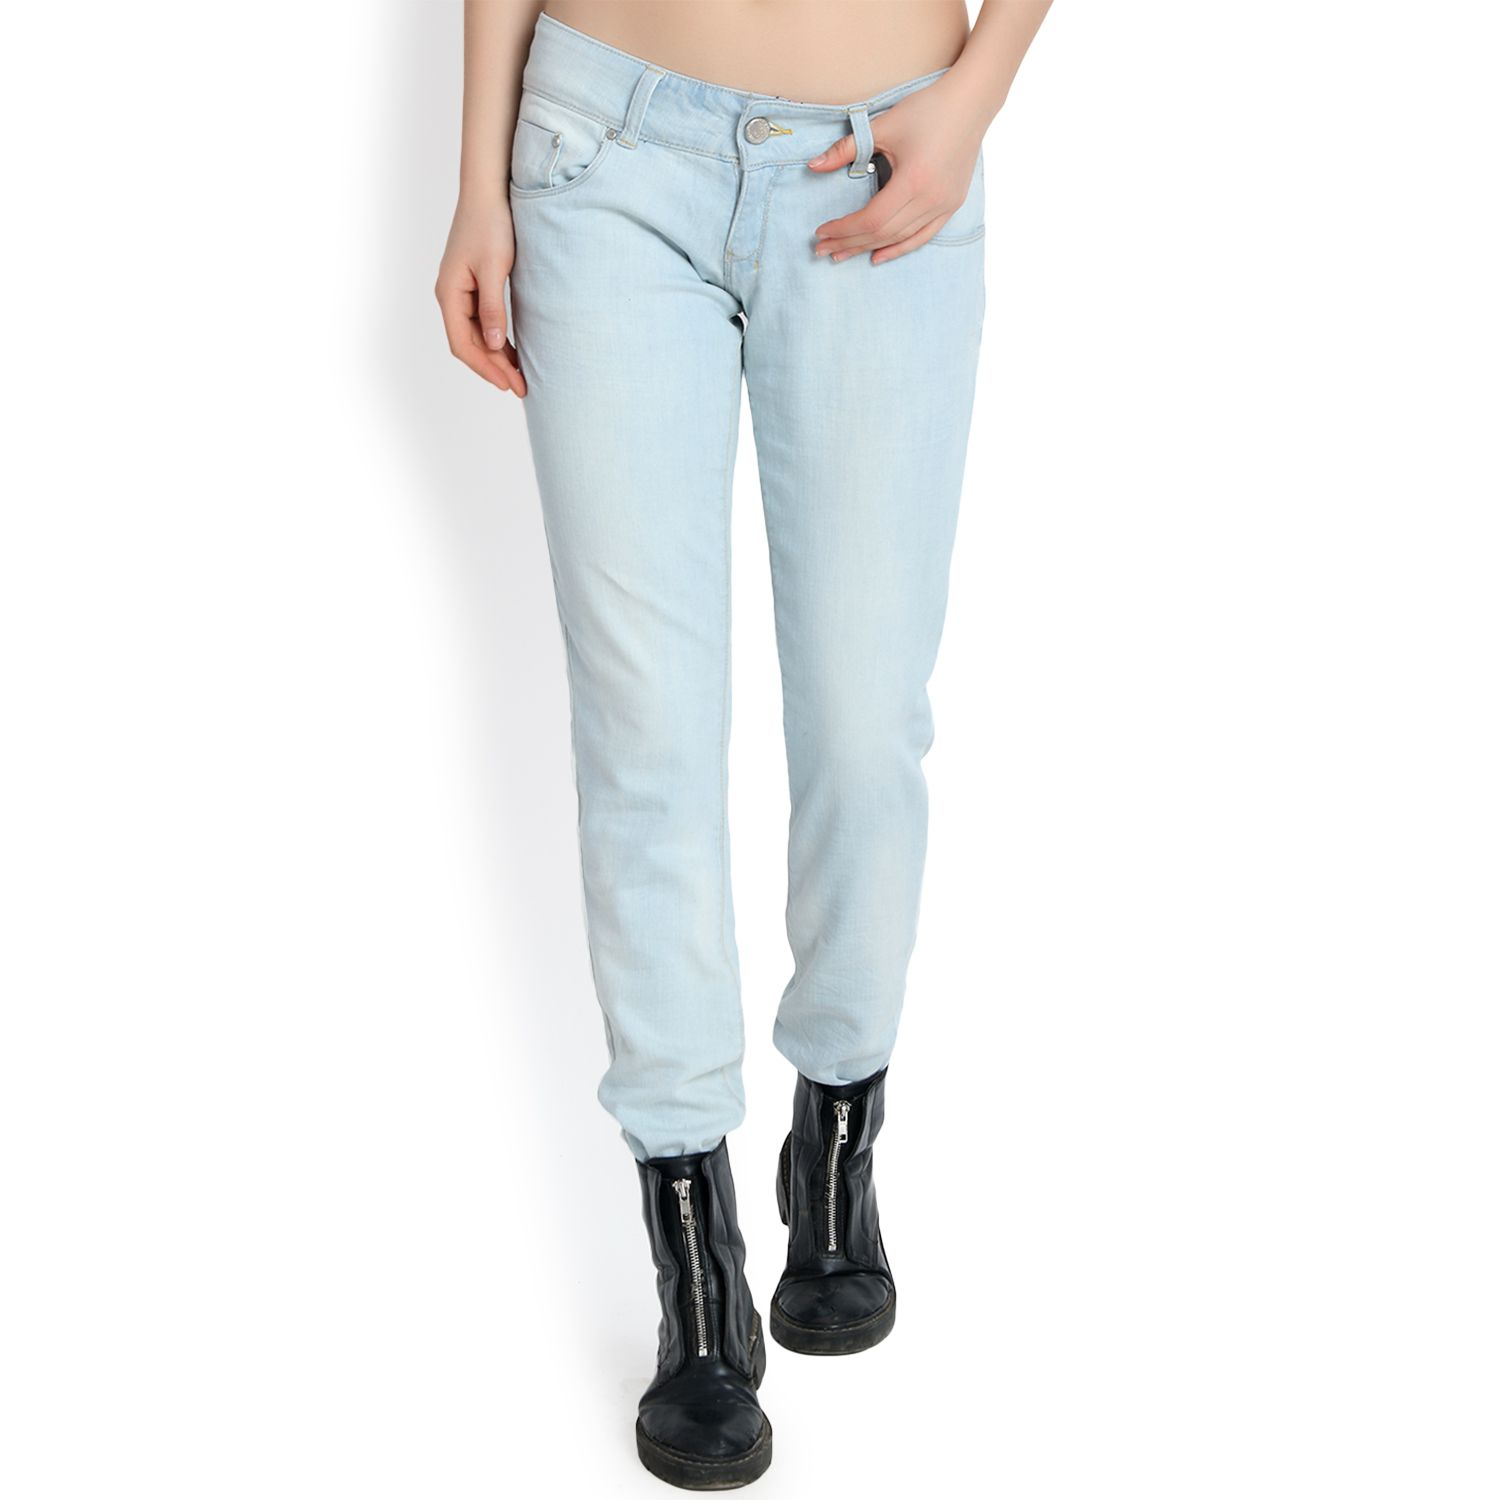 kotty Cotton Jeans - Blue